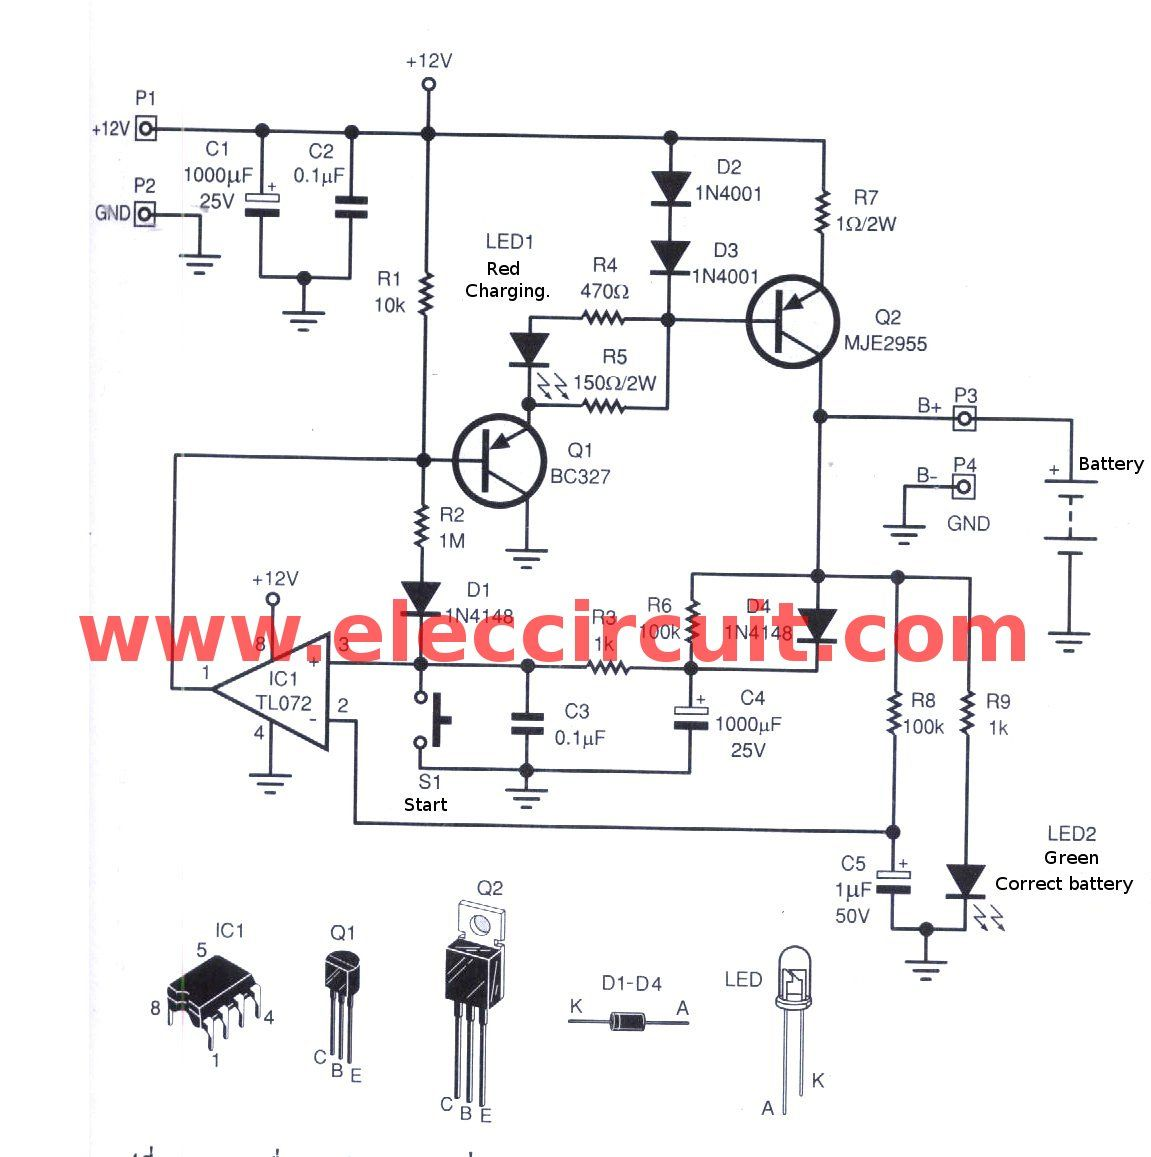 Automatic Nimh Battery Charger Circuit Cutoff When Full How To Test A Triac Electronic Circuits And Diagramelectronics The Project Is On Automatically Shut Off Fully Charged Can Charge Batteries 1 10 Pcs Depending Input Voltage